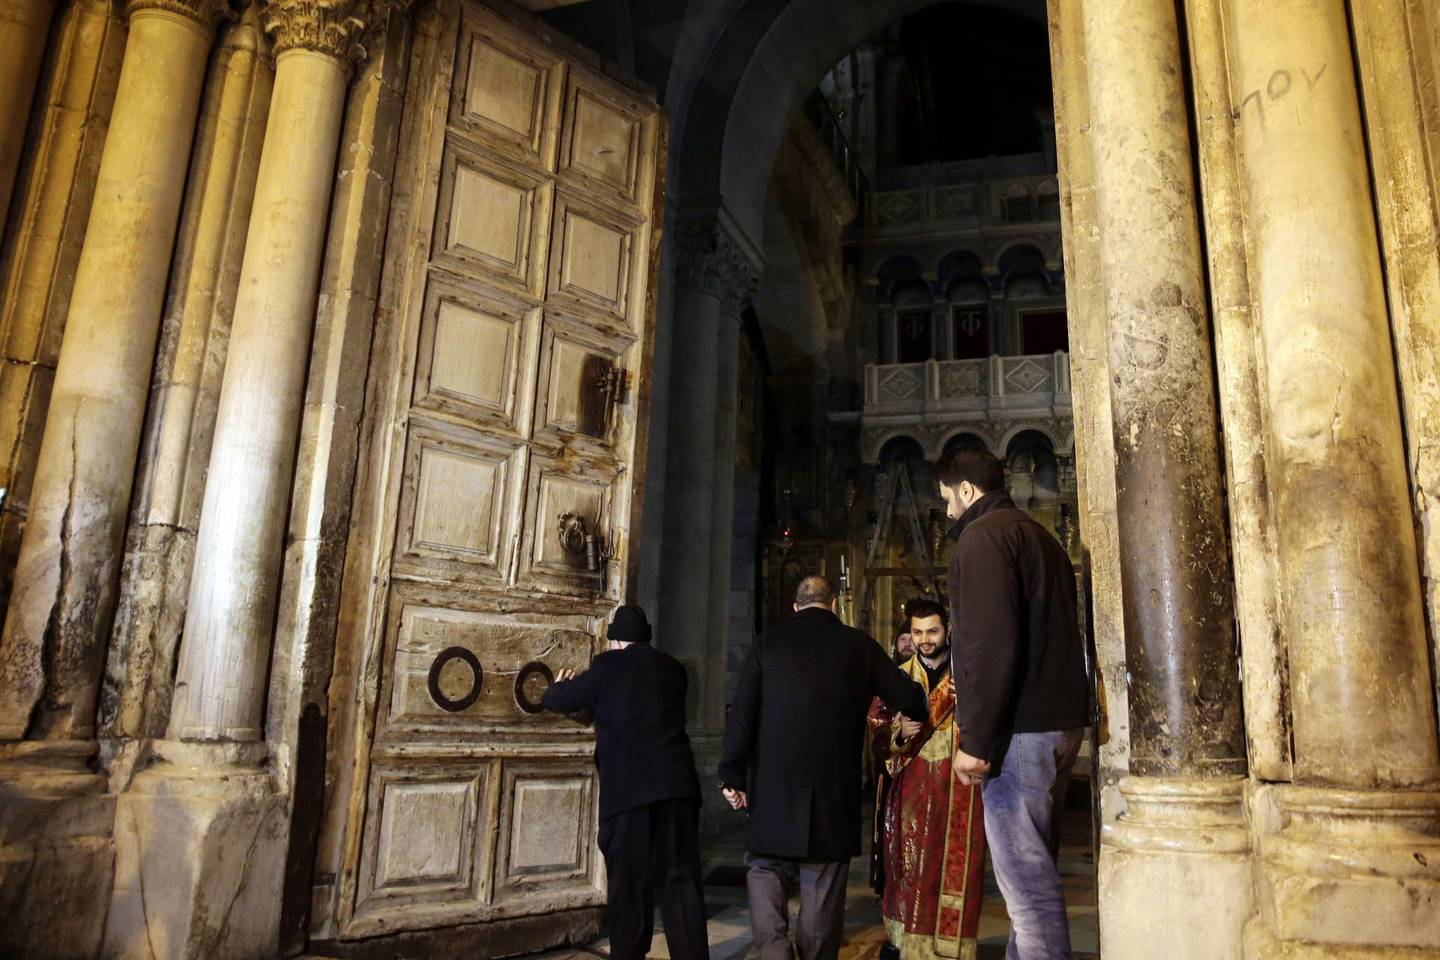 Christian clerics open the doors of the Church of the Holy Sepulchre, traditionally believed by many Christians to be the site of the crucifixion and burial of Jesus Christ, in Jerusalem, Wednesday, Feb. 28, 2018. Christian leaders said Tuesday that they will reopen the Church of the Holy Sepulchre in Jerusalem after Israeli officials suspended a plan to impose taxes on church properties in the holy city. (AP Photo/Mahmoud Illean)